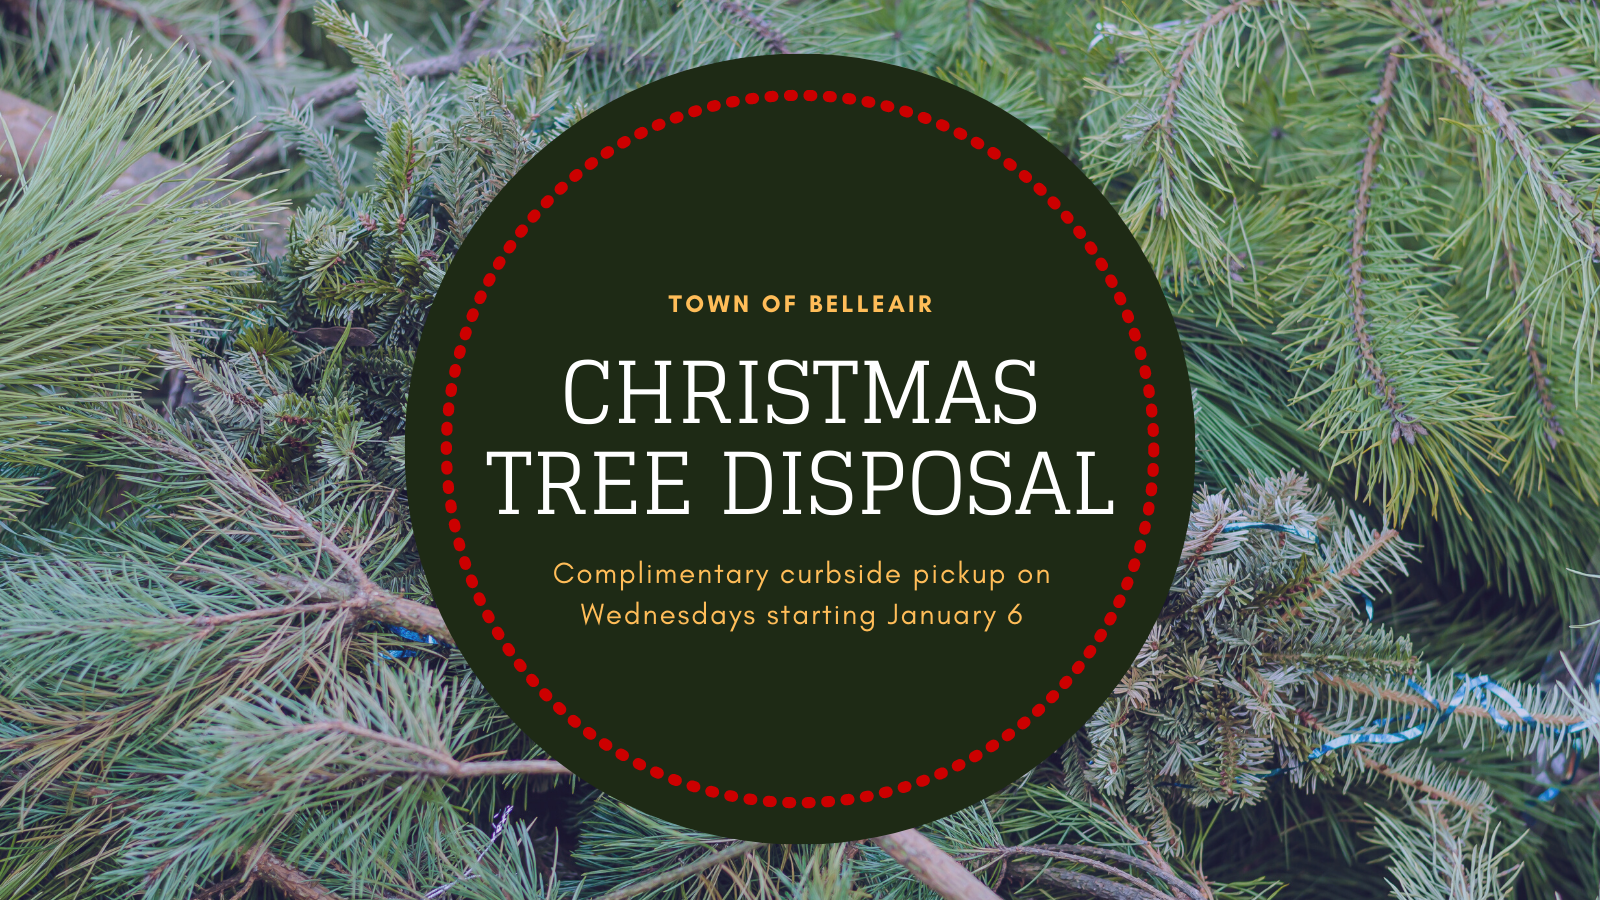 Belleair Christmas Tree Disposal - Complimentary curbside pickup on Wednesdays starting 1/6